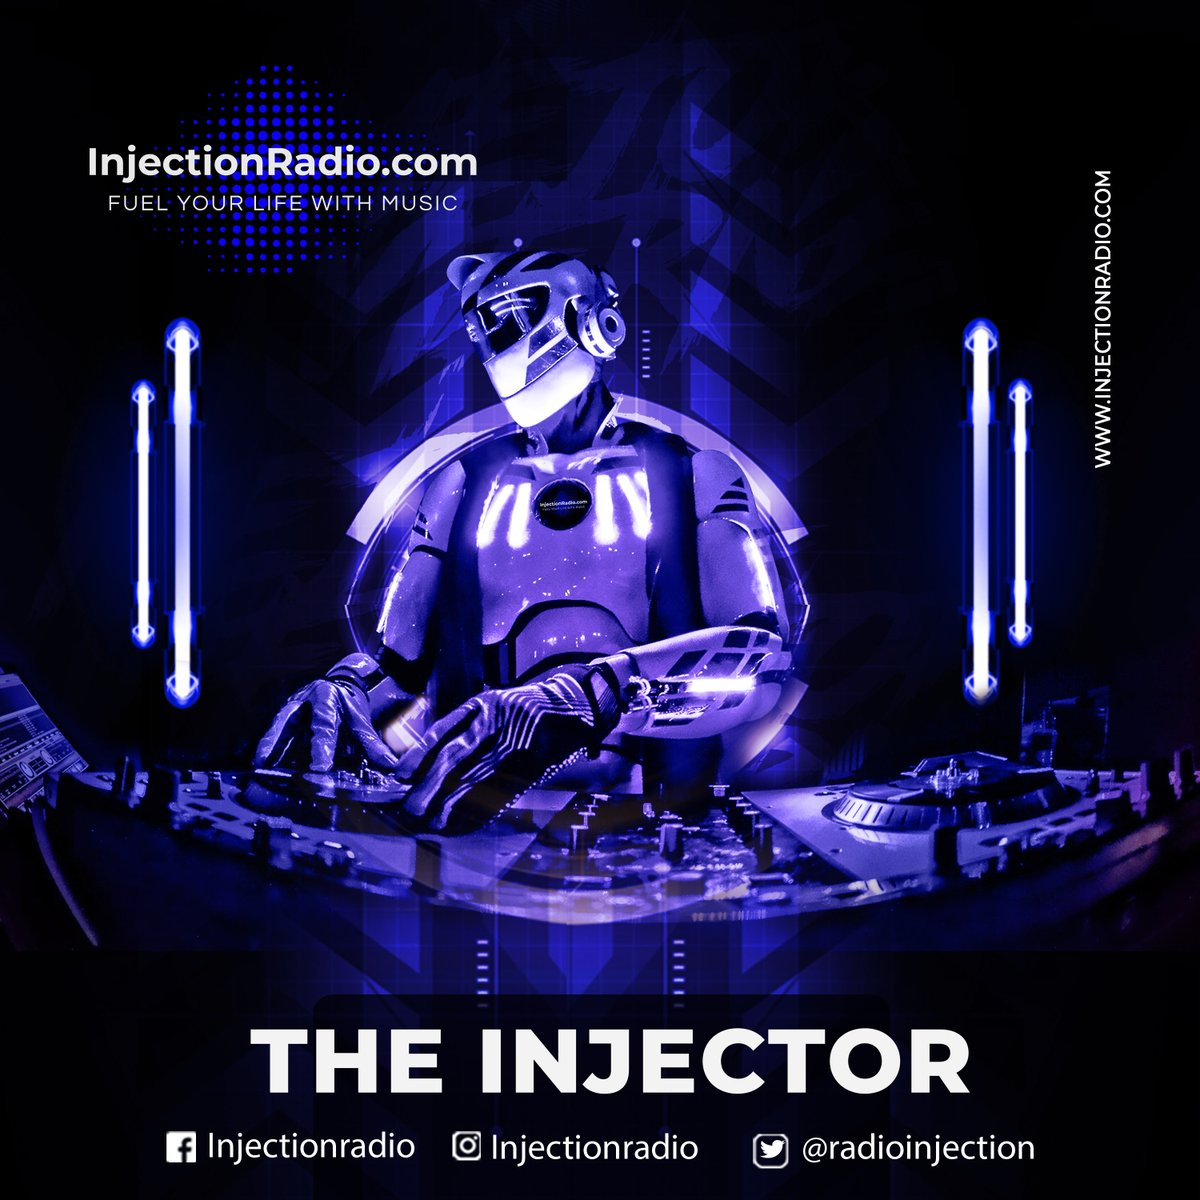 Remember! We currently have no Live DJ's during the day! But THE INJECTOR is here to keep you partying strong! Tune in now at http://www.injectionradio.com #party #partyatwork #partytime #grabthespeaker #liveradio #robotpic.twitter.com/zfL88y0lUW